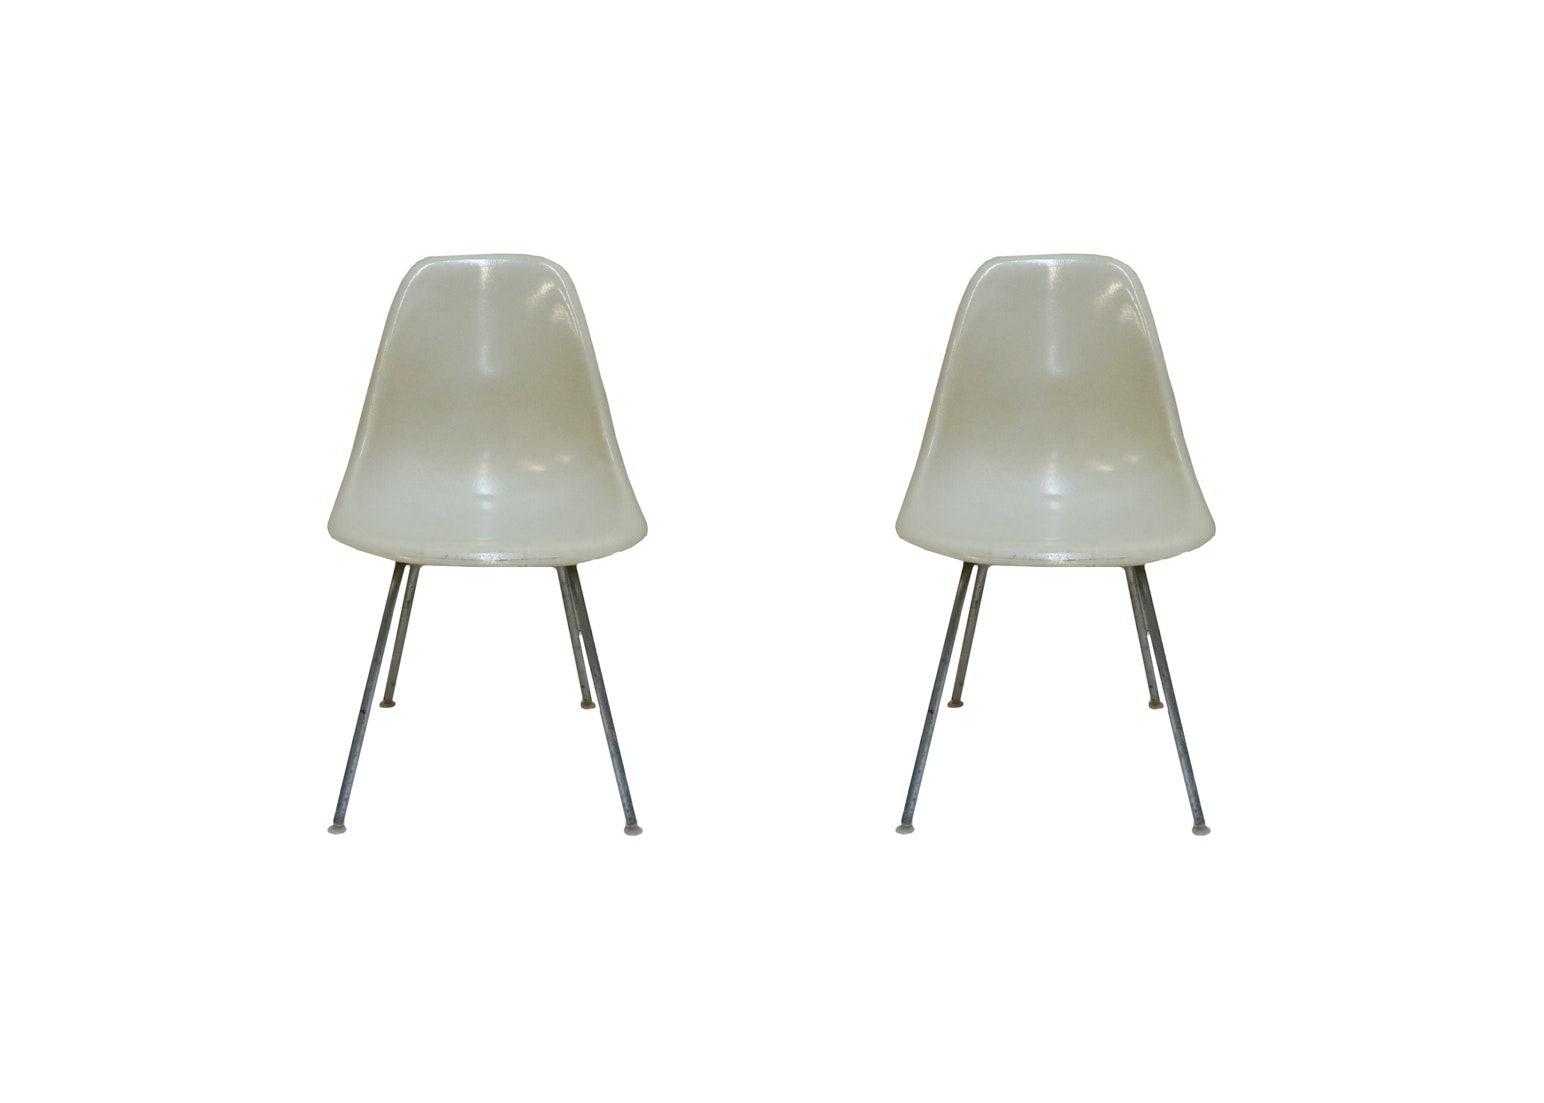 Two Eames Shell Chairs by Herman Miller